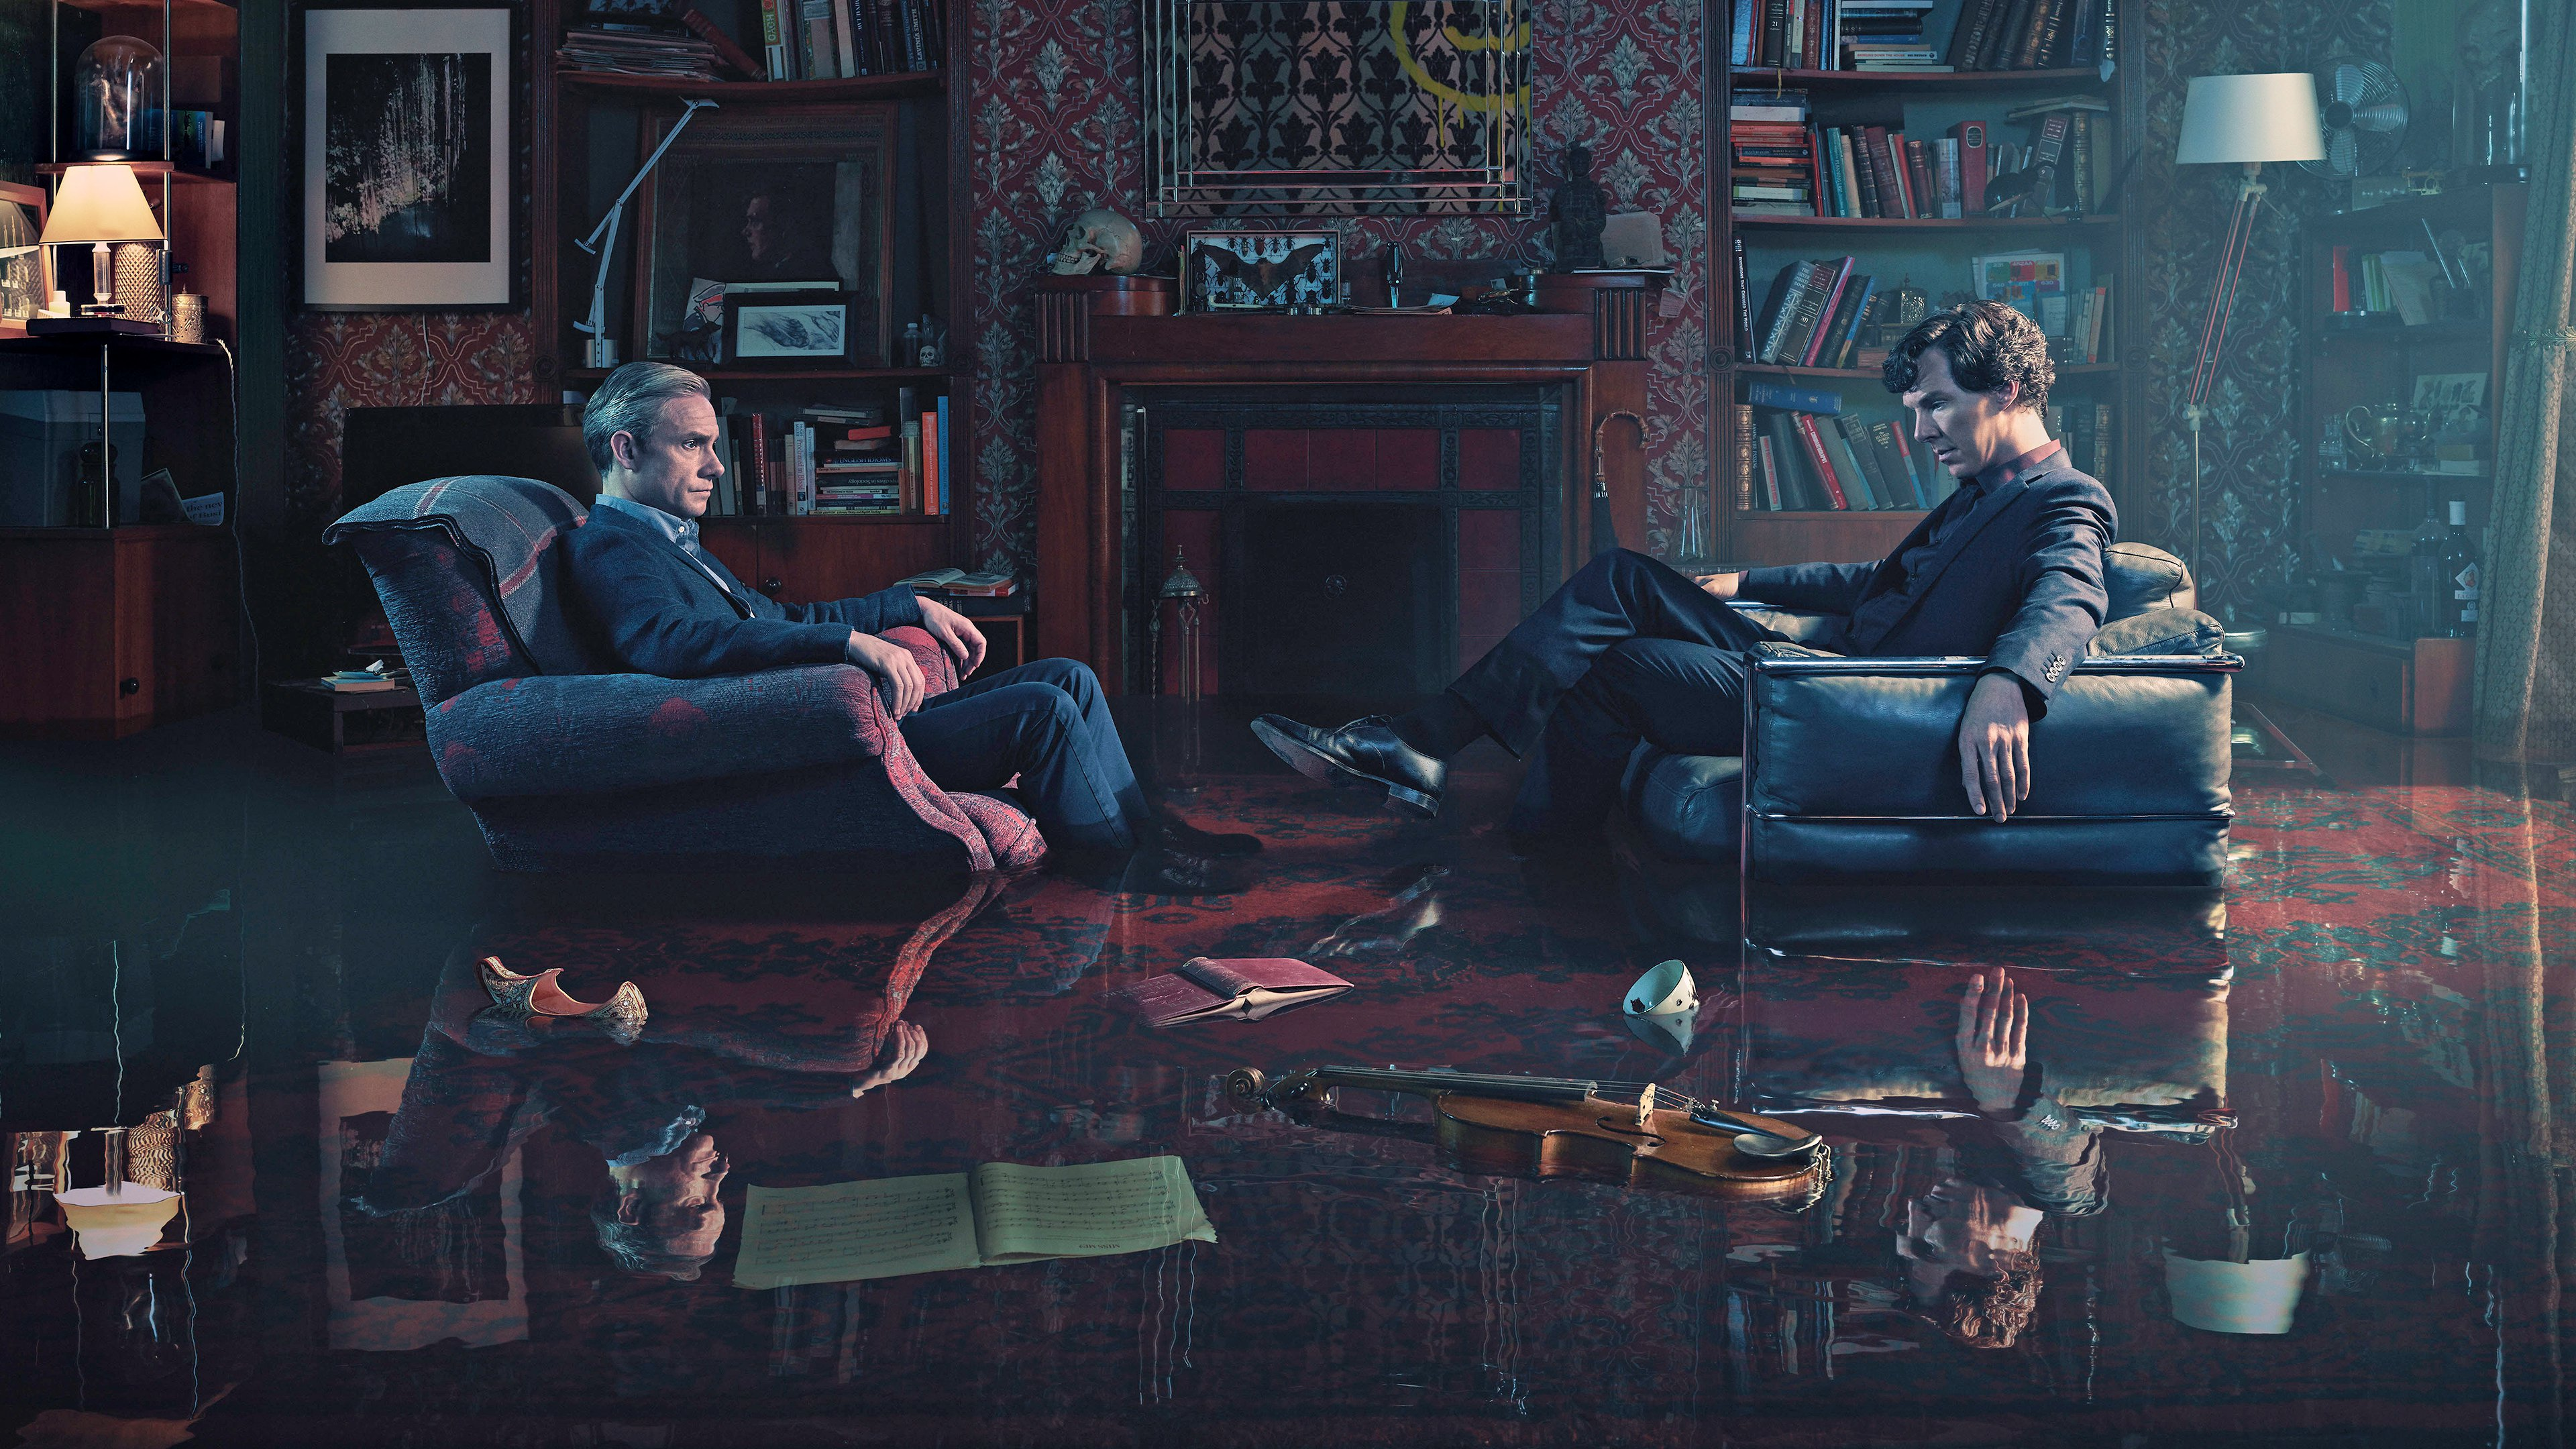 Sherlock Hd Tv Shows 4k Wallpapers Images Backgrounds